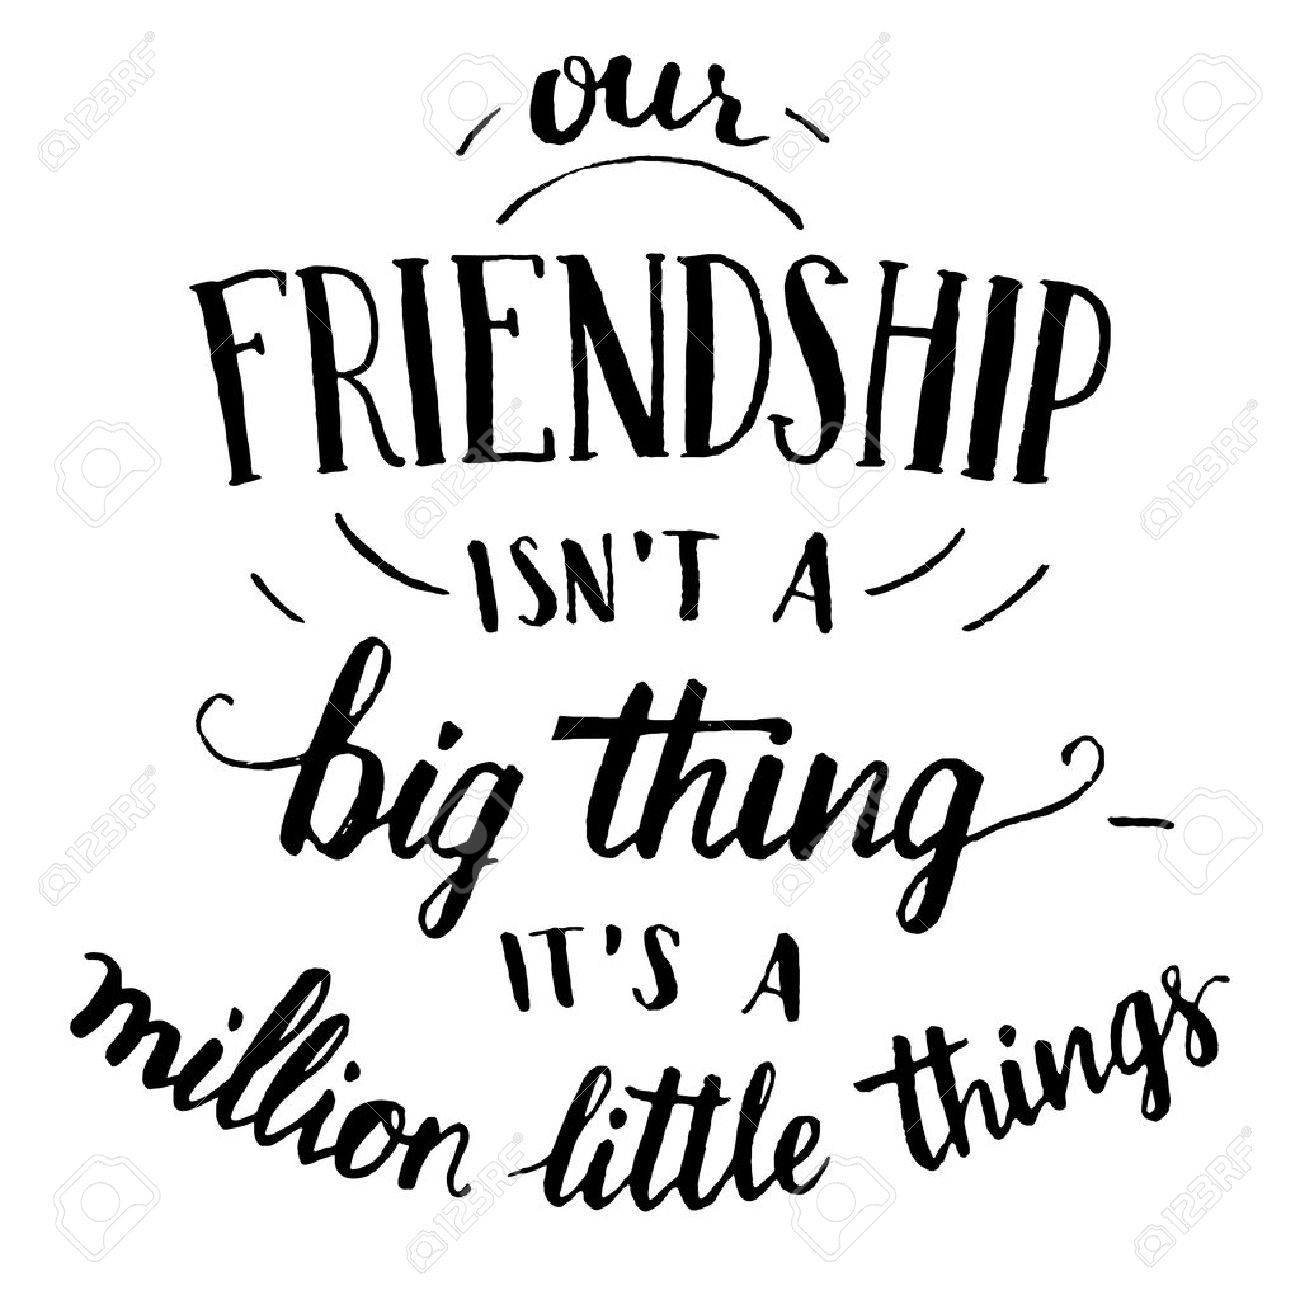 Latin Quotes About Friendship Our Friendship Isn't A Big Thing  It's A Million Little Things